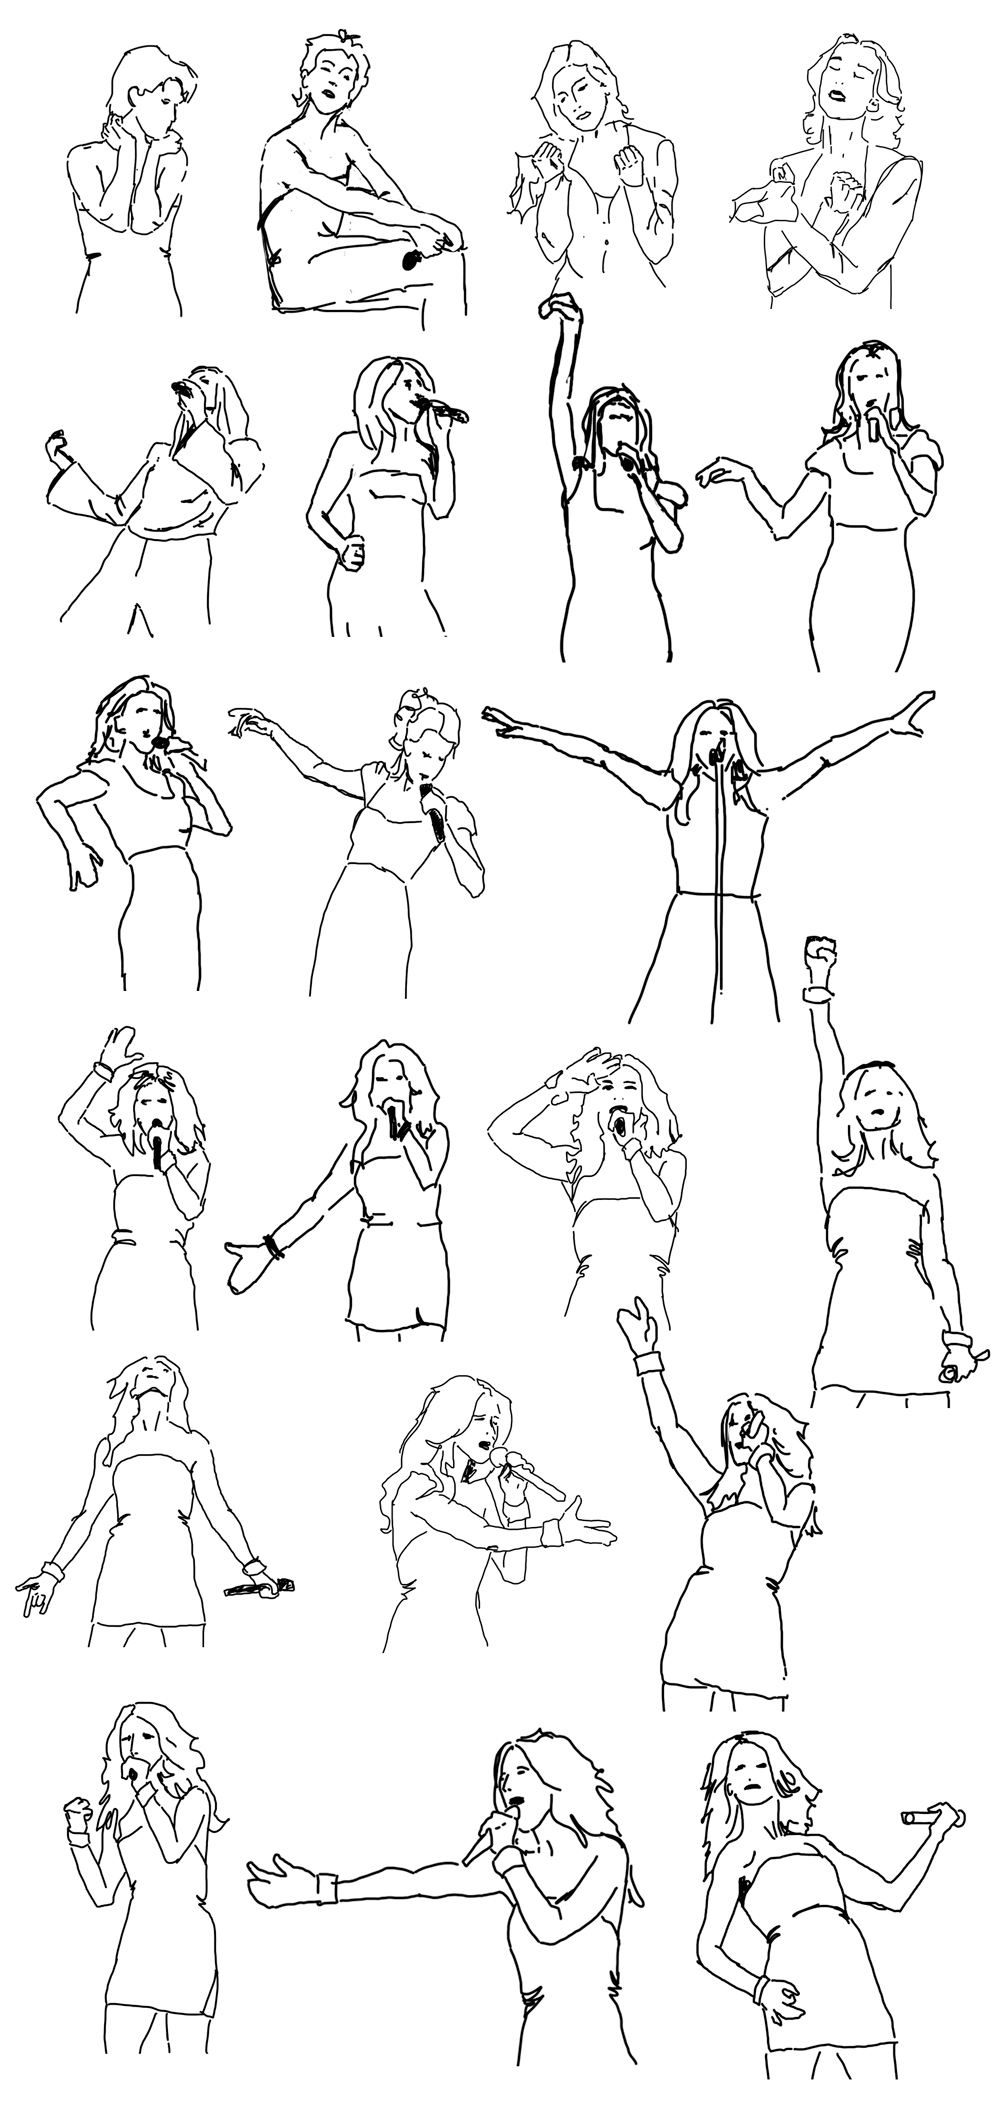 Markus-Wreland-Celine-Dion-pose-sketches-collection.jpg